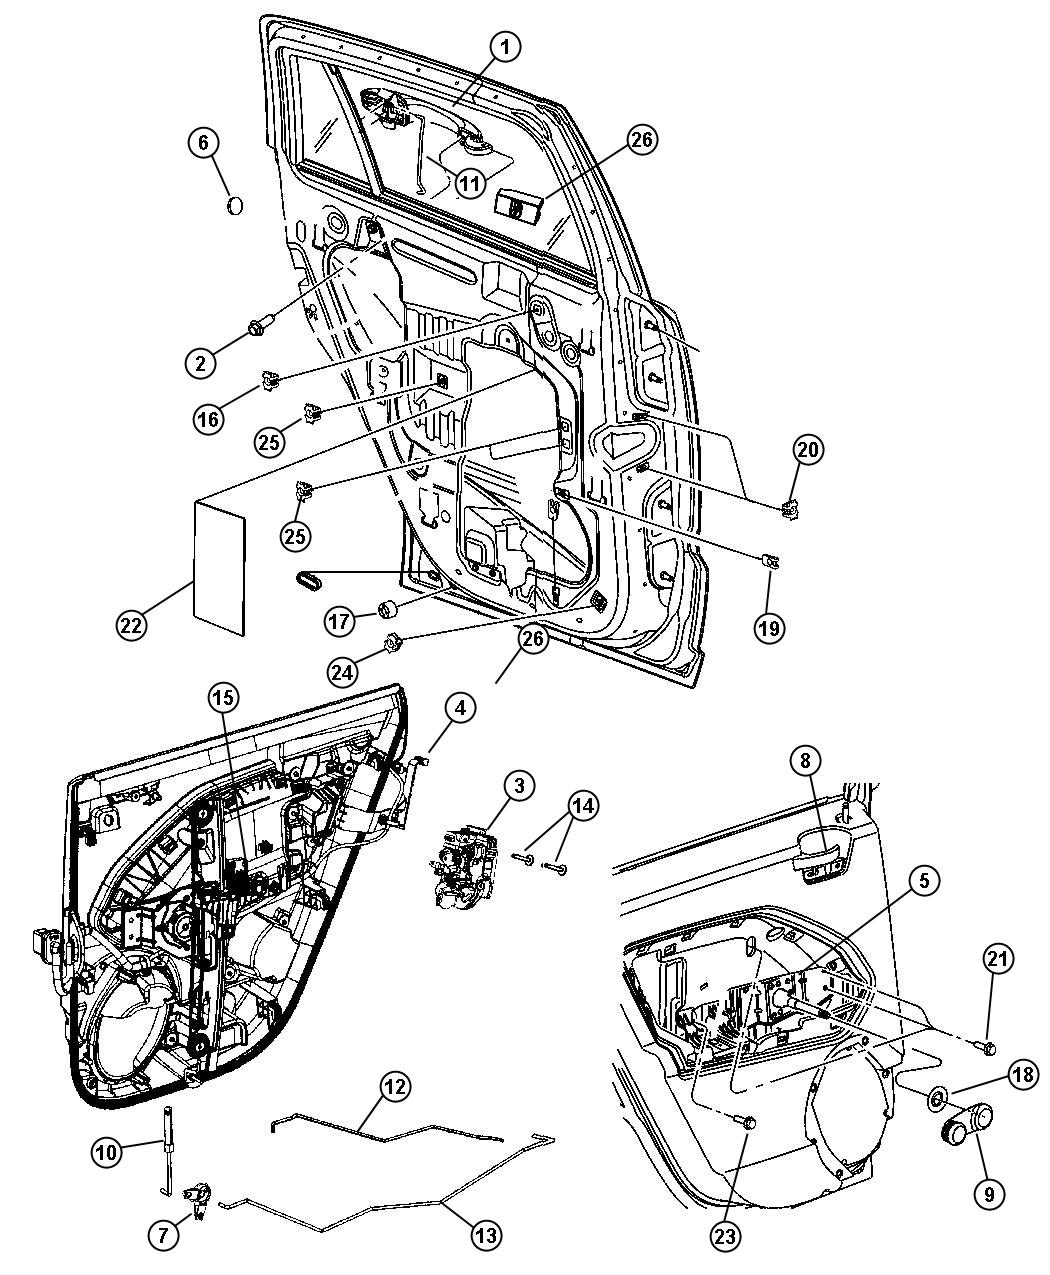 Service manual [1995 Chrysler Concorde Driver Door Latch